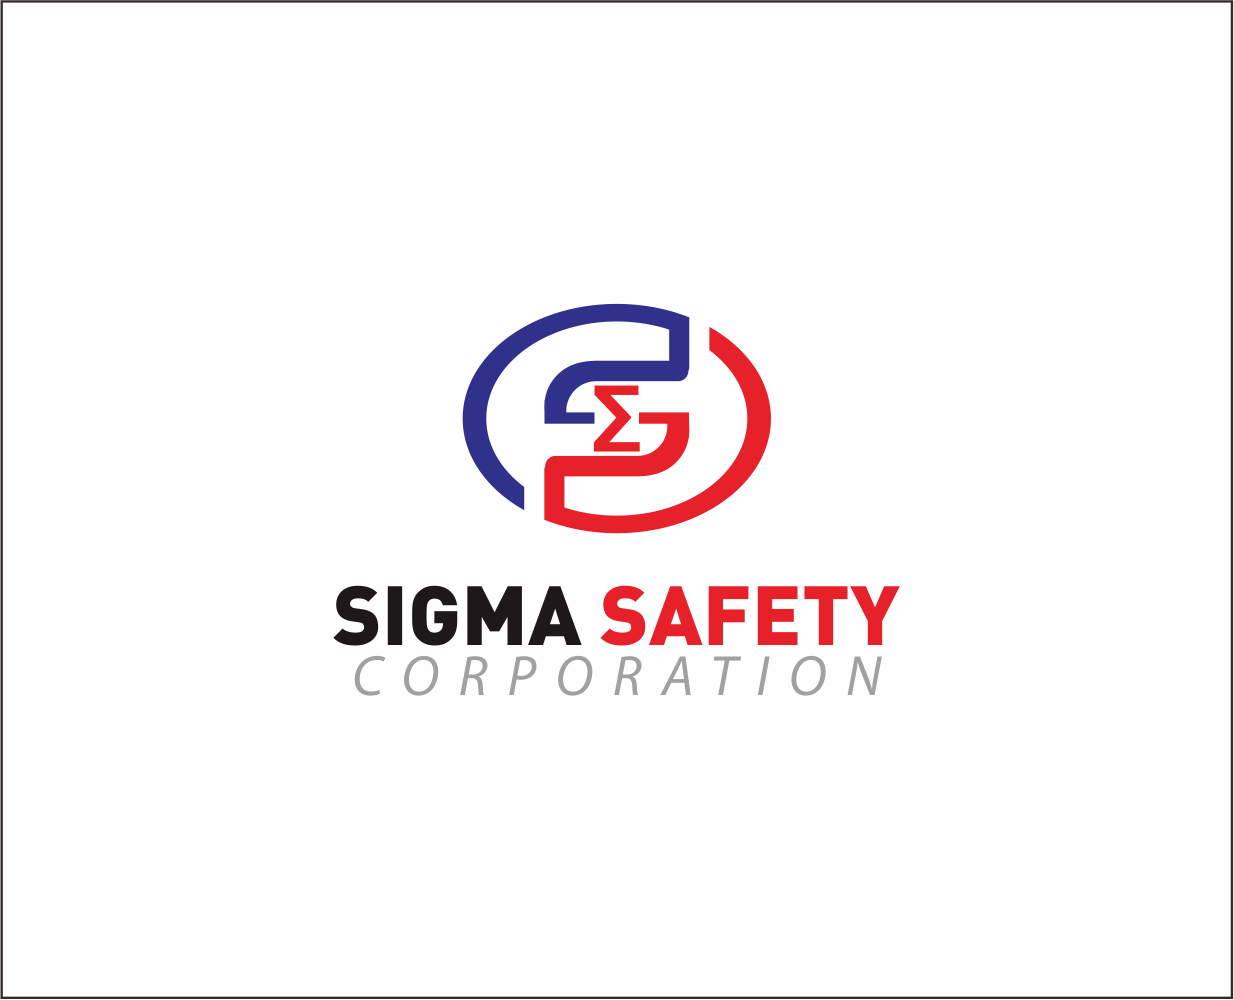 Logo Design by Armada Jamaluddin - Entry No. 240 in the Logo Design Contest Creative Logo Design for Sigma Safety Corporation.